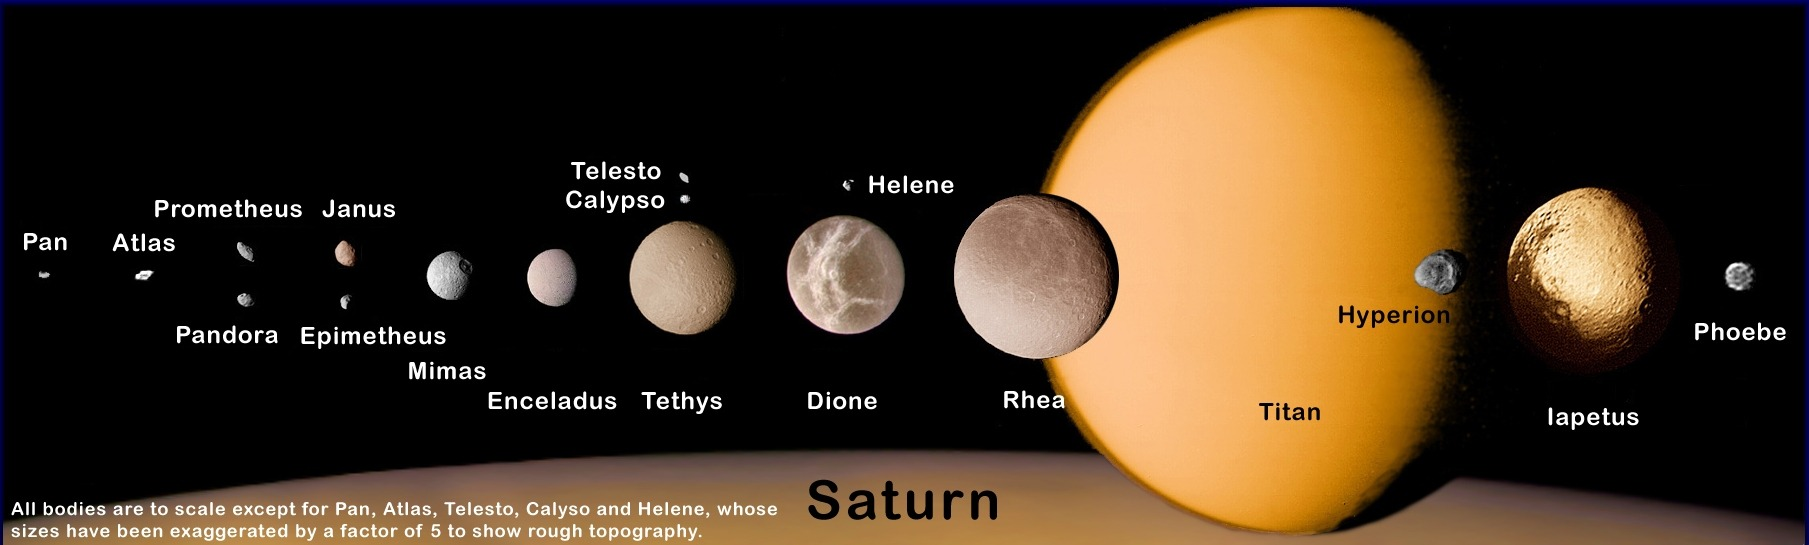 the biggest planet is saturn - photo #16